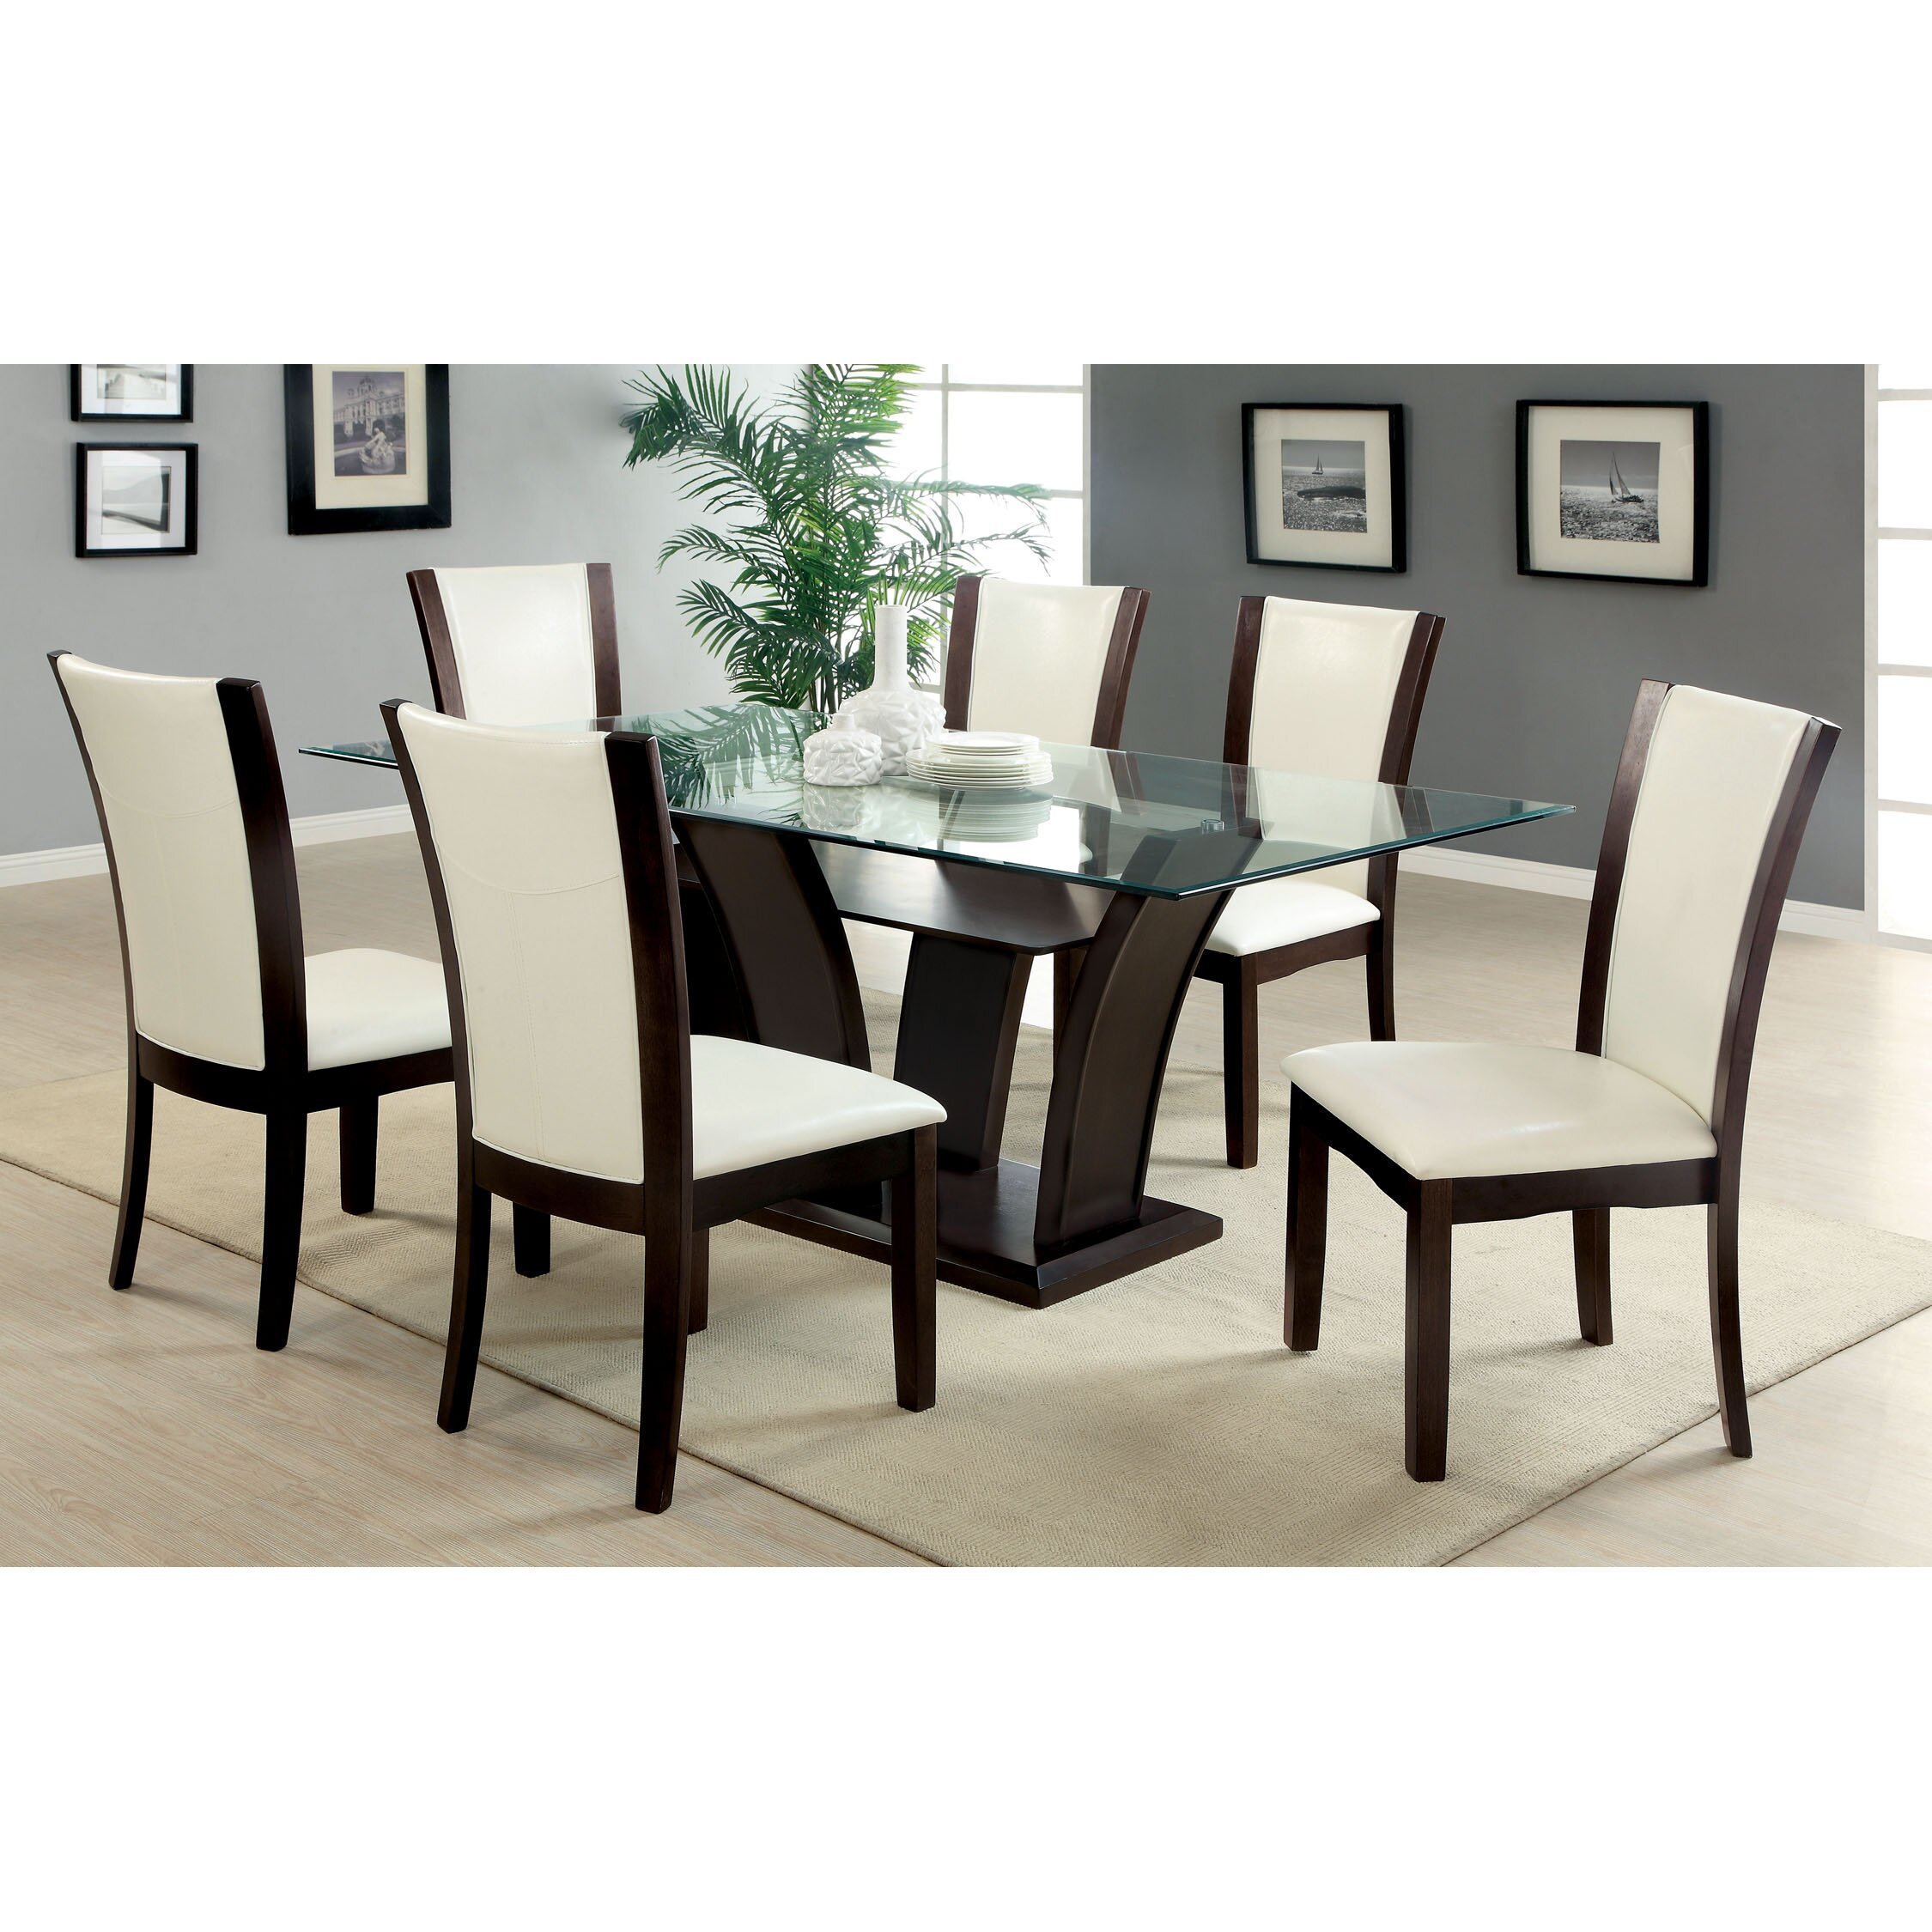 hokku designs carmilla 7 piece dining set reviews wayfair On dining set decoration